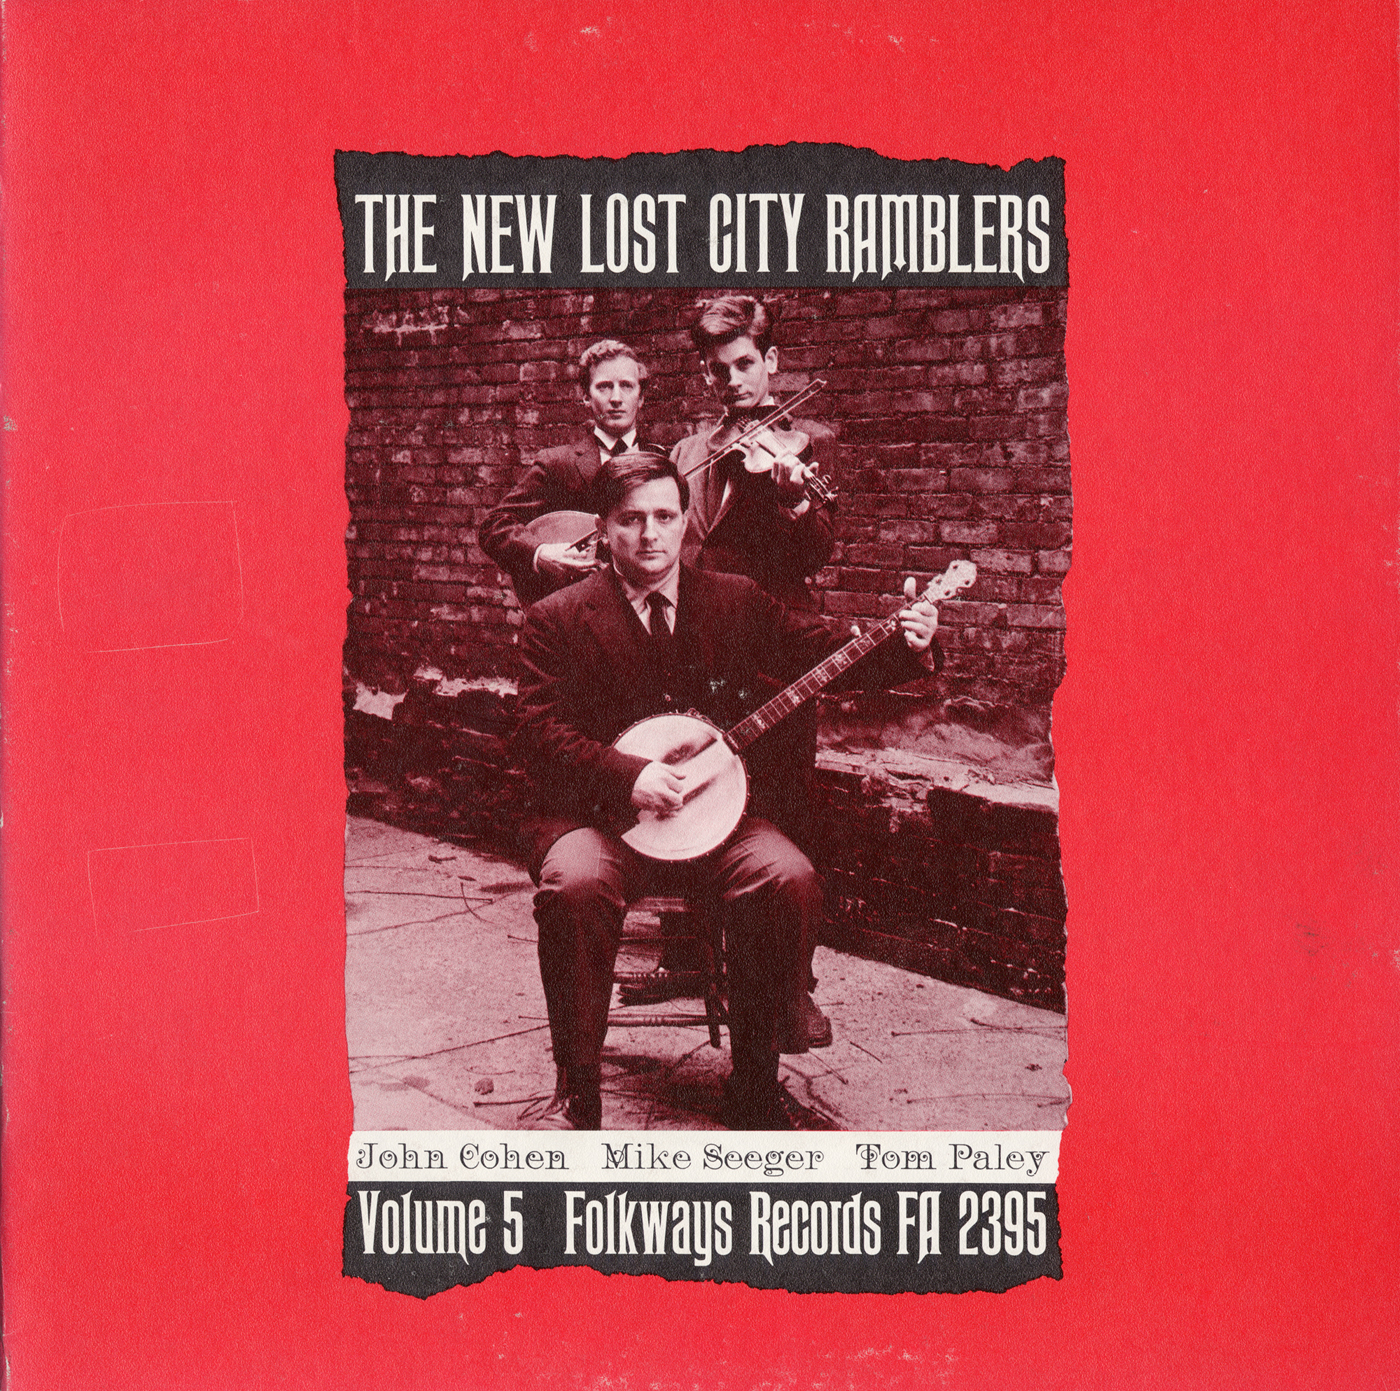 New Lost City Ramblers Volume 5 Smithsonian Folkways